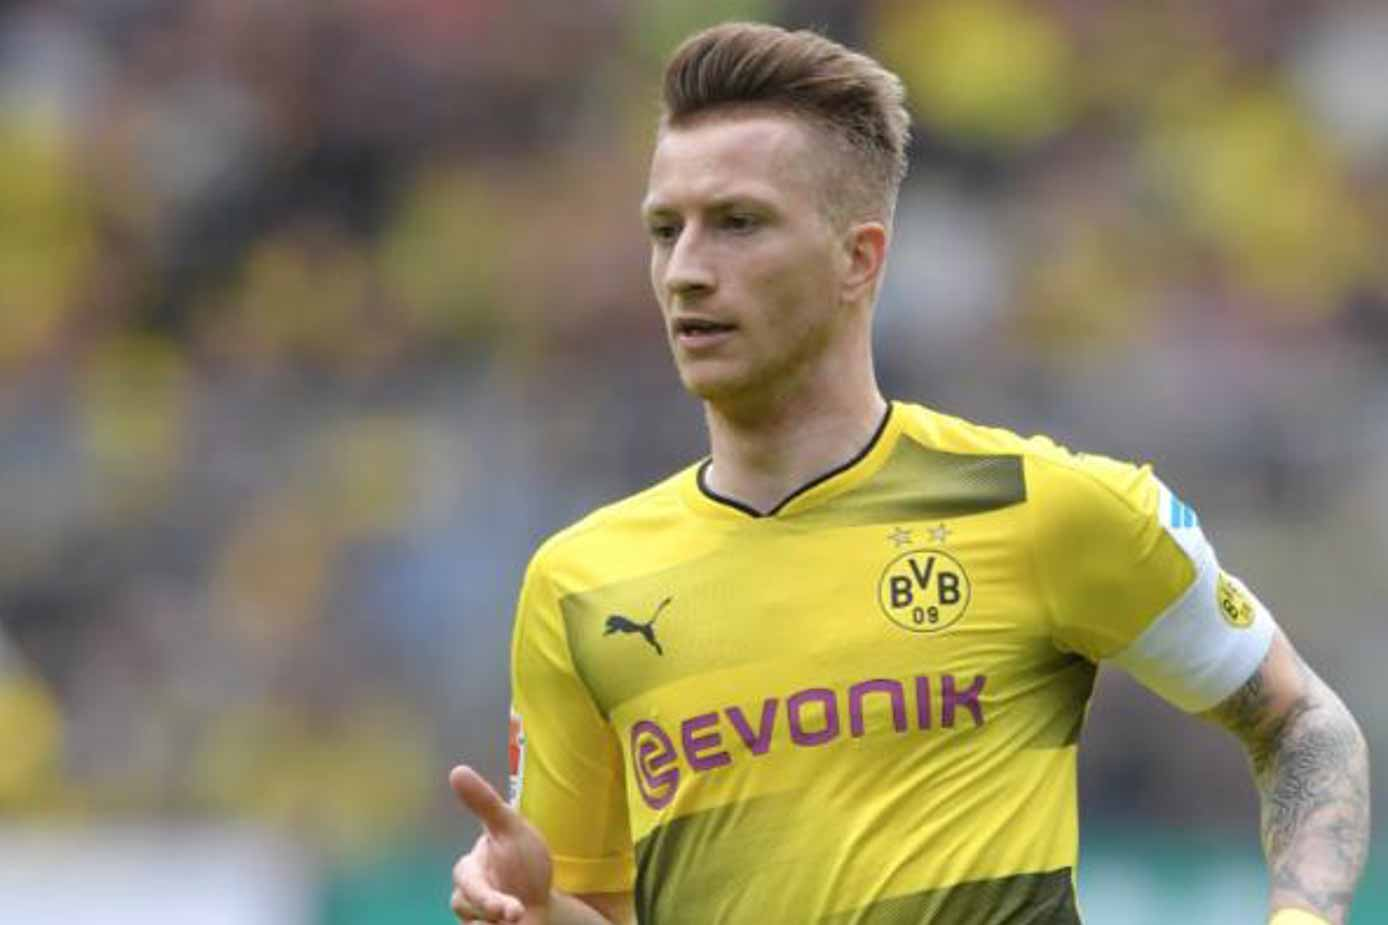 marco reus jersey germany bvb available at soccerpro